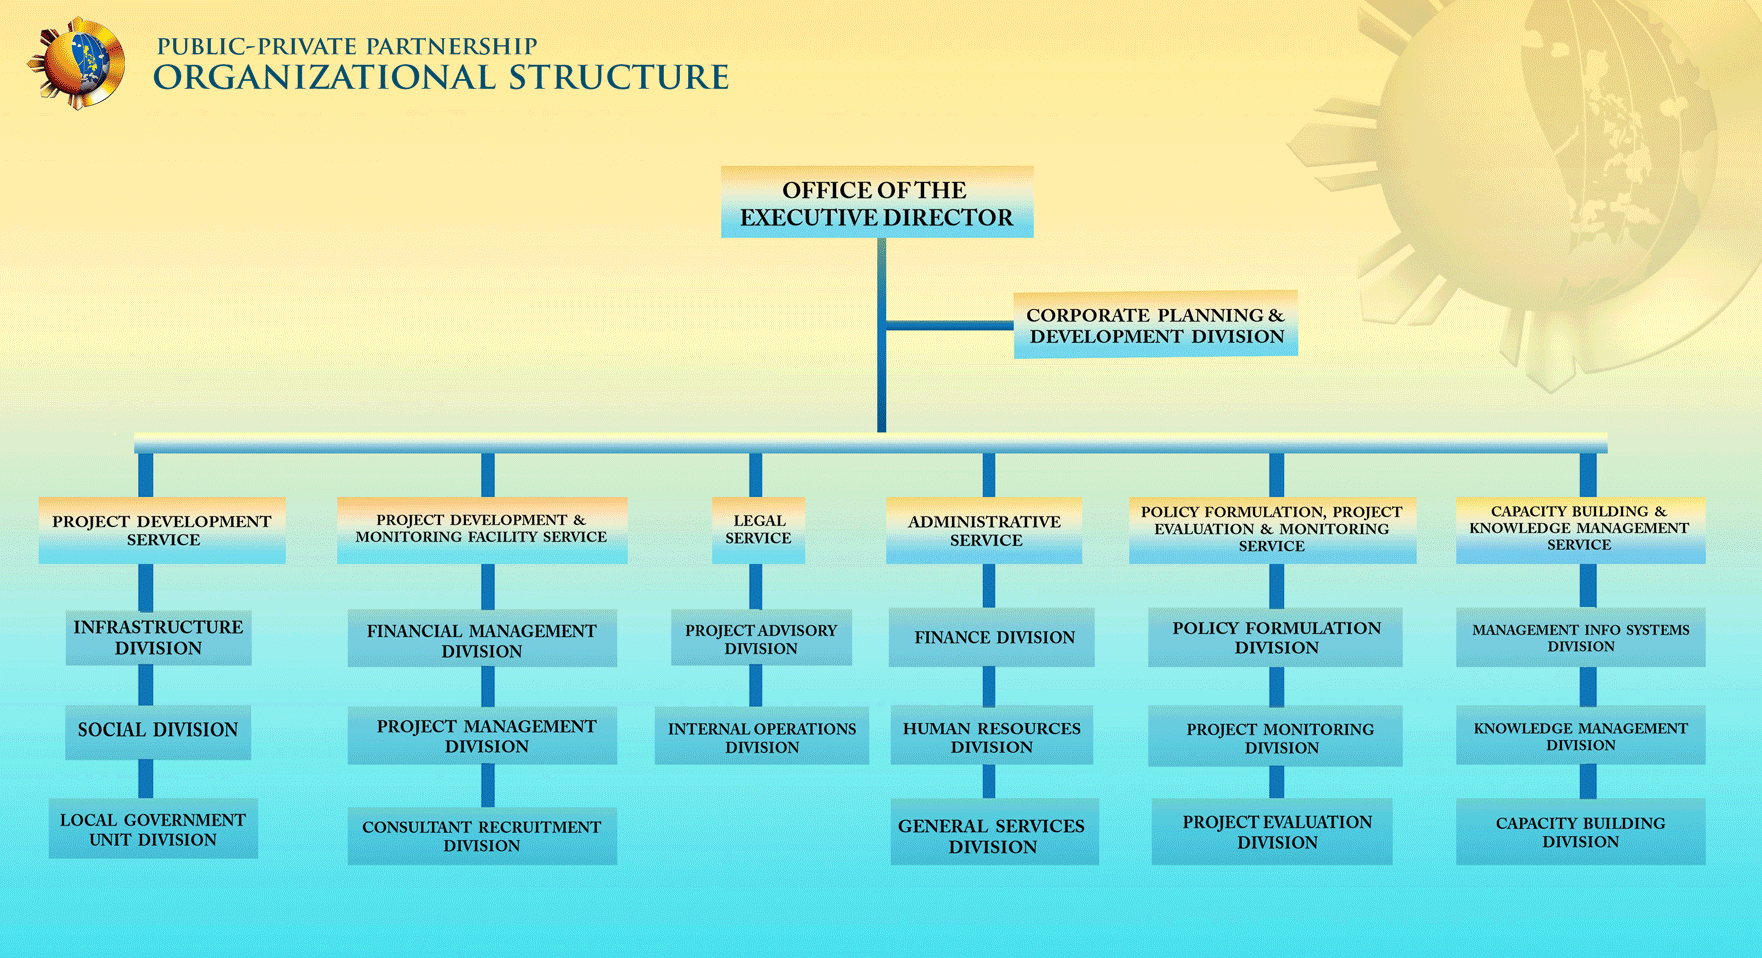 organizational structure ppp centerppp center